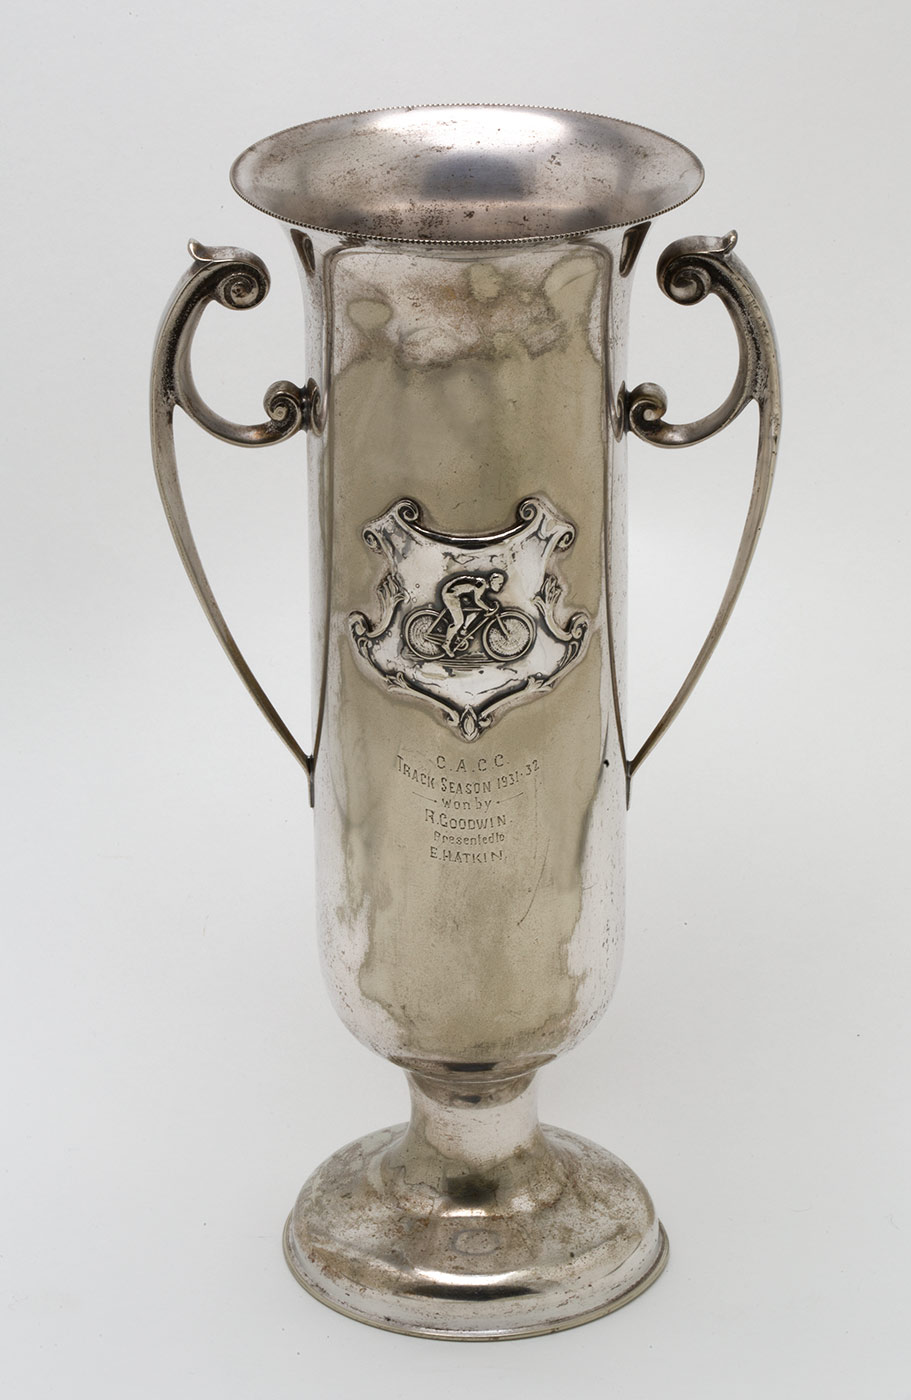 A two handled silver presentation cup with a decorative shield featuring a raised relief of a cyclist. Below the shield is engraved inscriptions that read 'C.A.C.C. / TRACK SEASON 1931-32 / WON BY / R. GOODWIN / PRESENTED TO / E. WATKIN.'. - click to view larger image